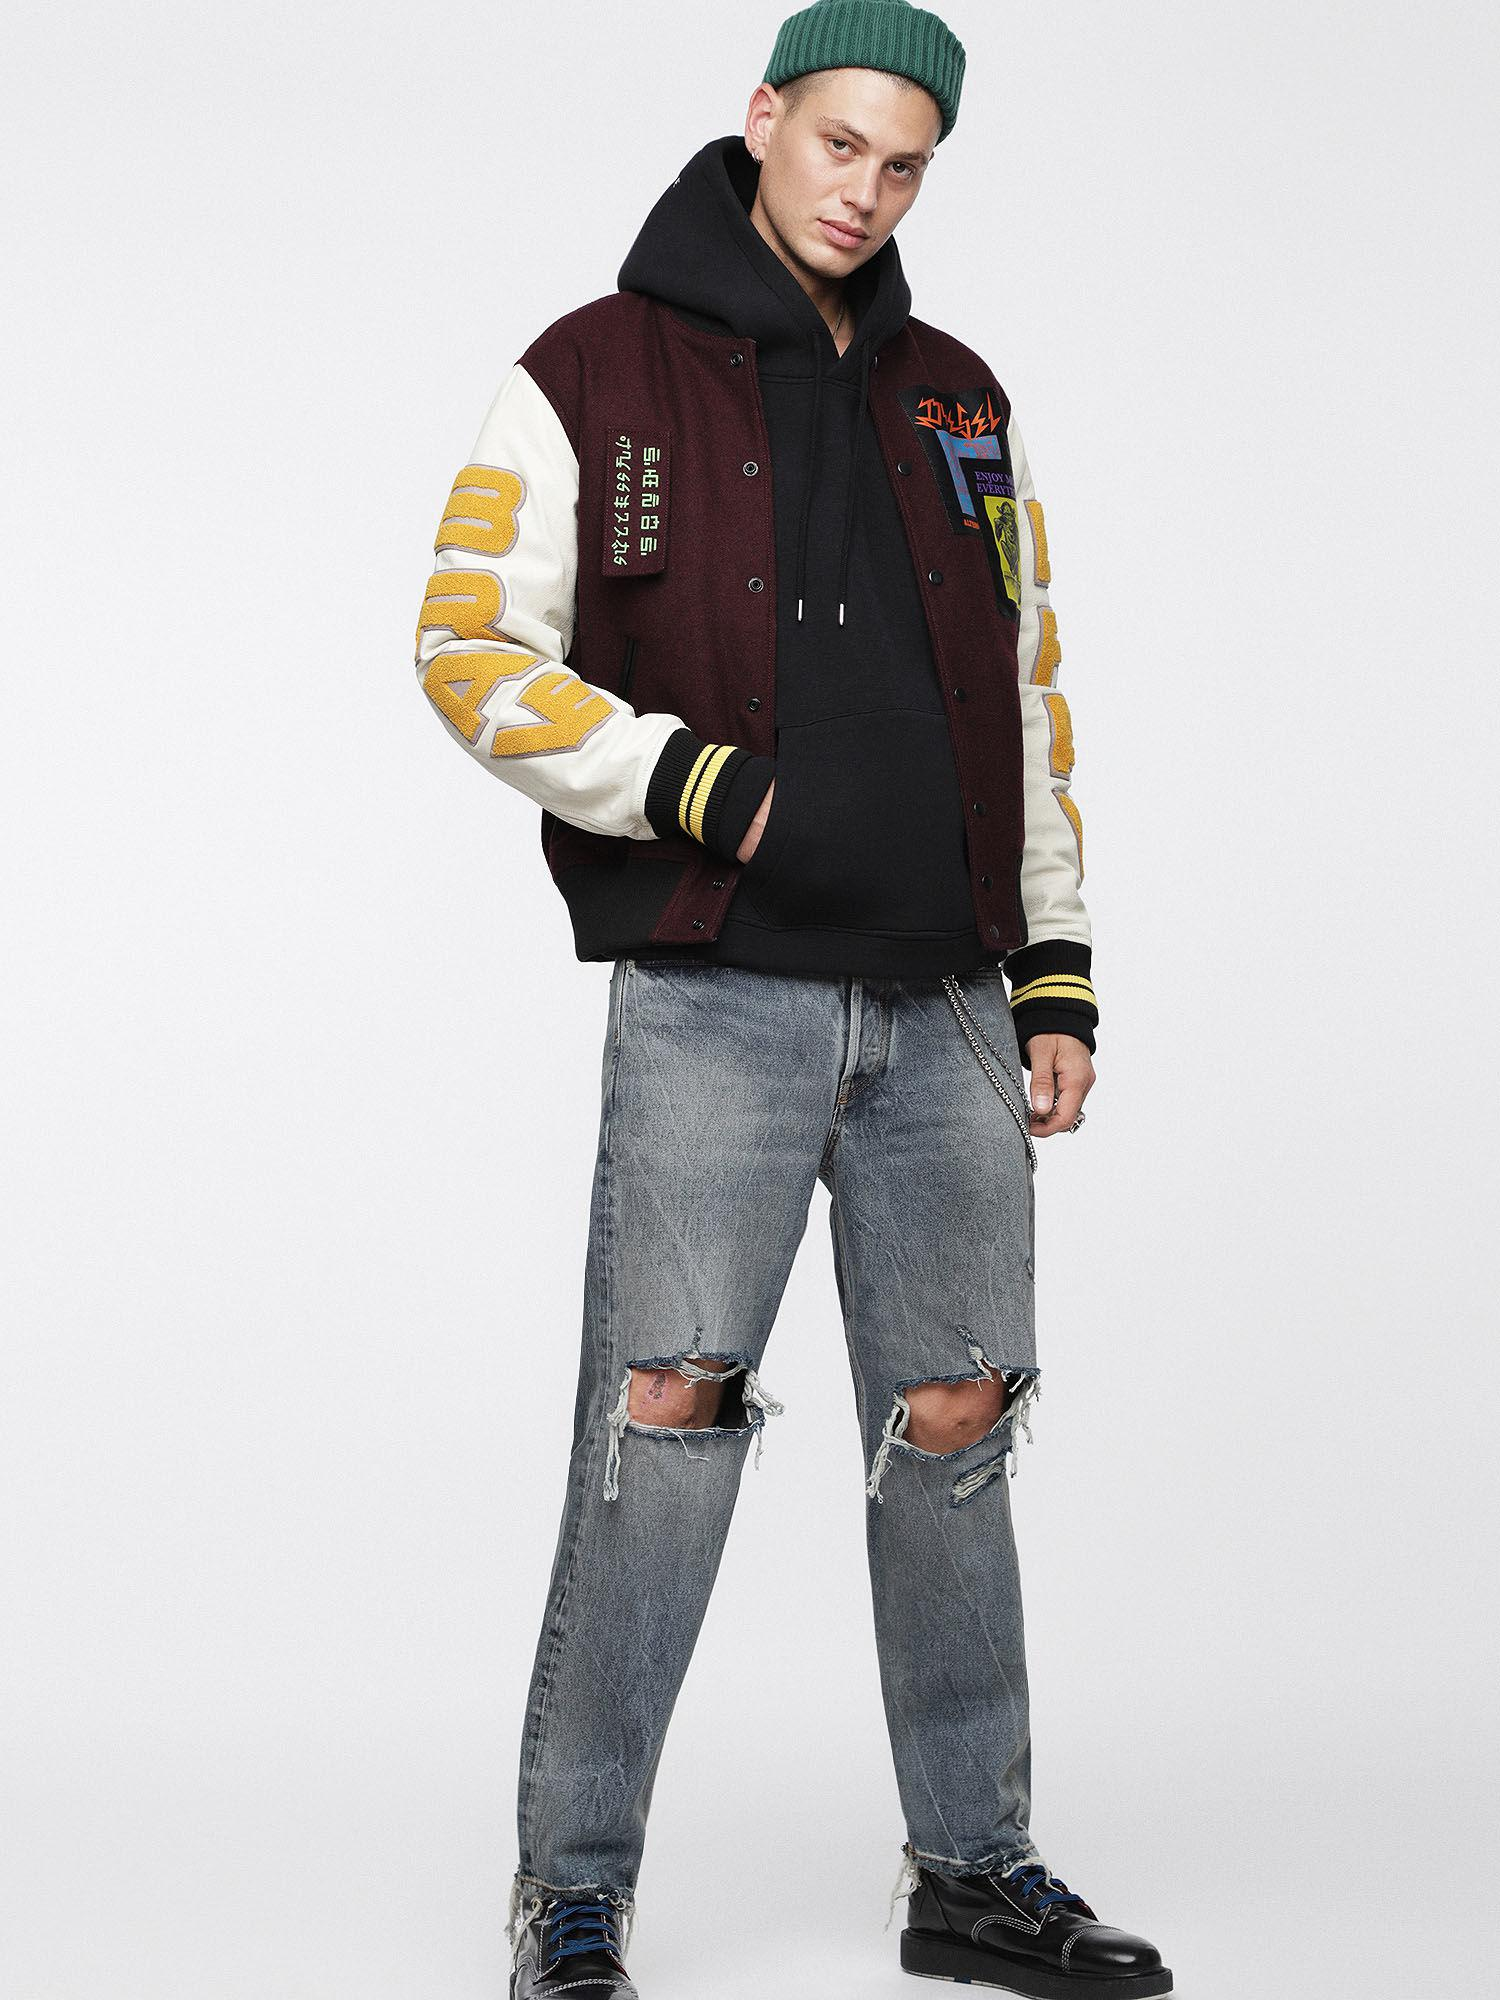 ef25412992e3 DIESEL - Multicolor Leather Bomber Jacket With Patches for Men - Lyst. View  fullscreen